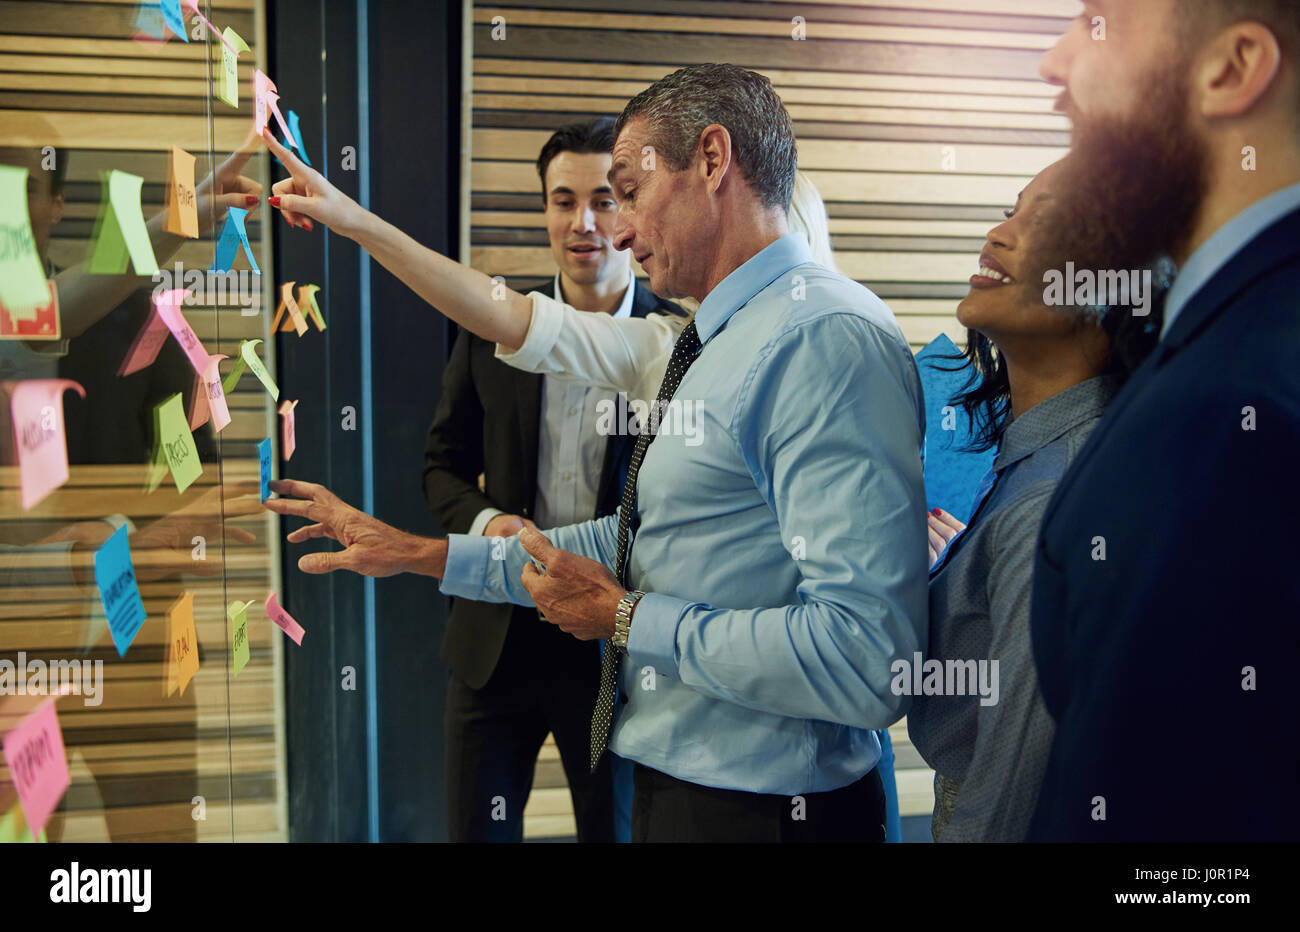 Business people standing at the wall with the stickers and communicating during the meeting. - Stock Image